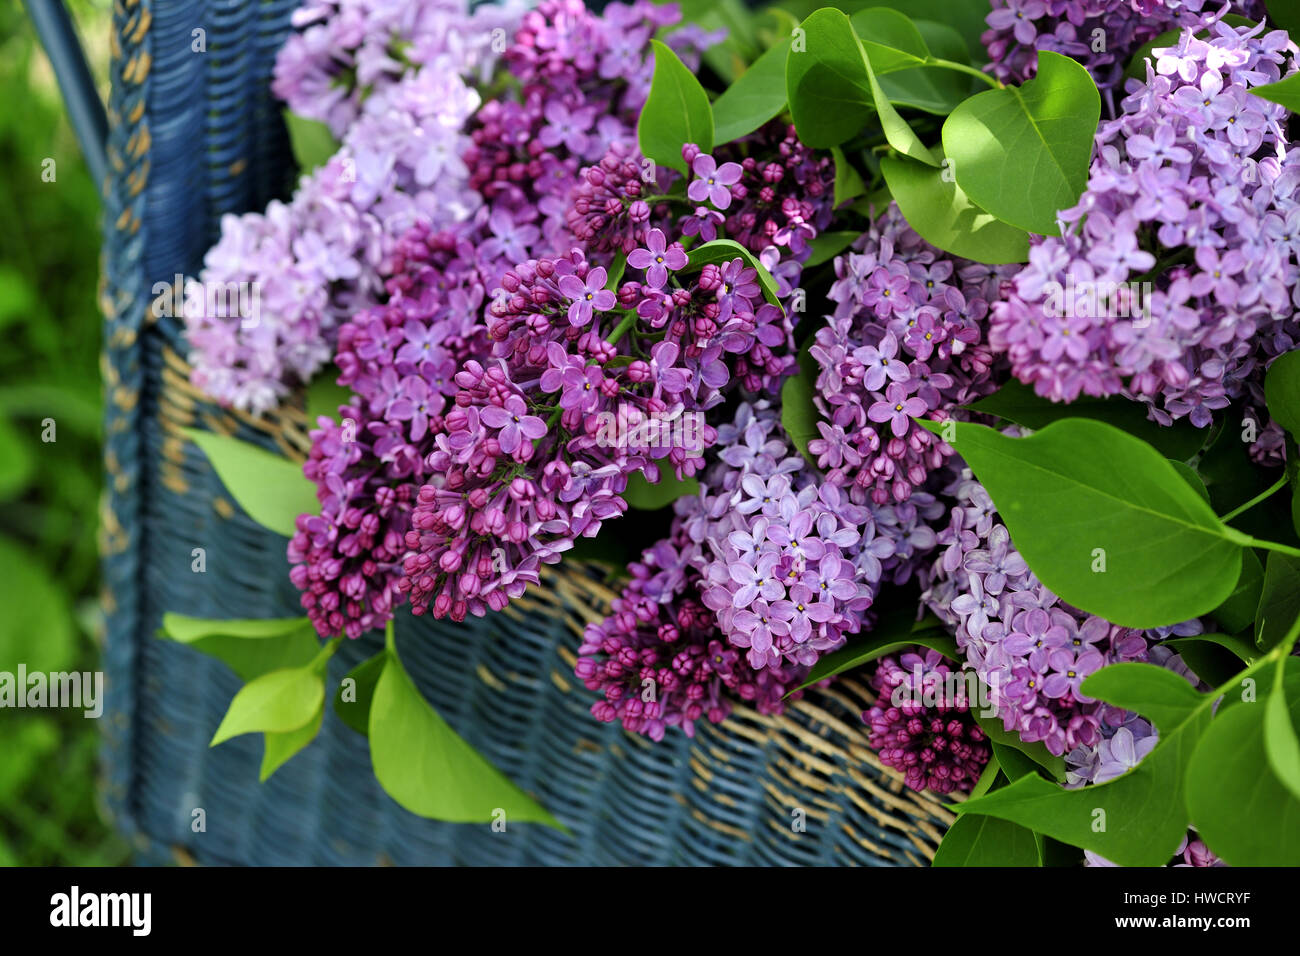 Shrubs with purple flowers at end of branch - Stock Photo Branch Bucket Cut Cut Flower Harvest Lilac Mauve Outdoors Purple Pink White Shrub Spring Stems Syringa Vulgaris Garden Bench